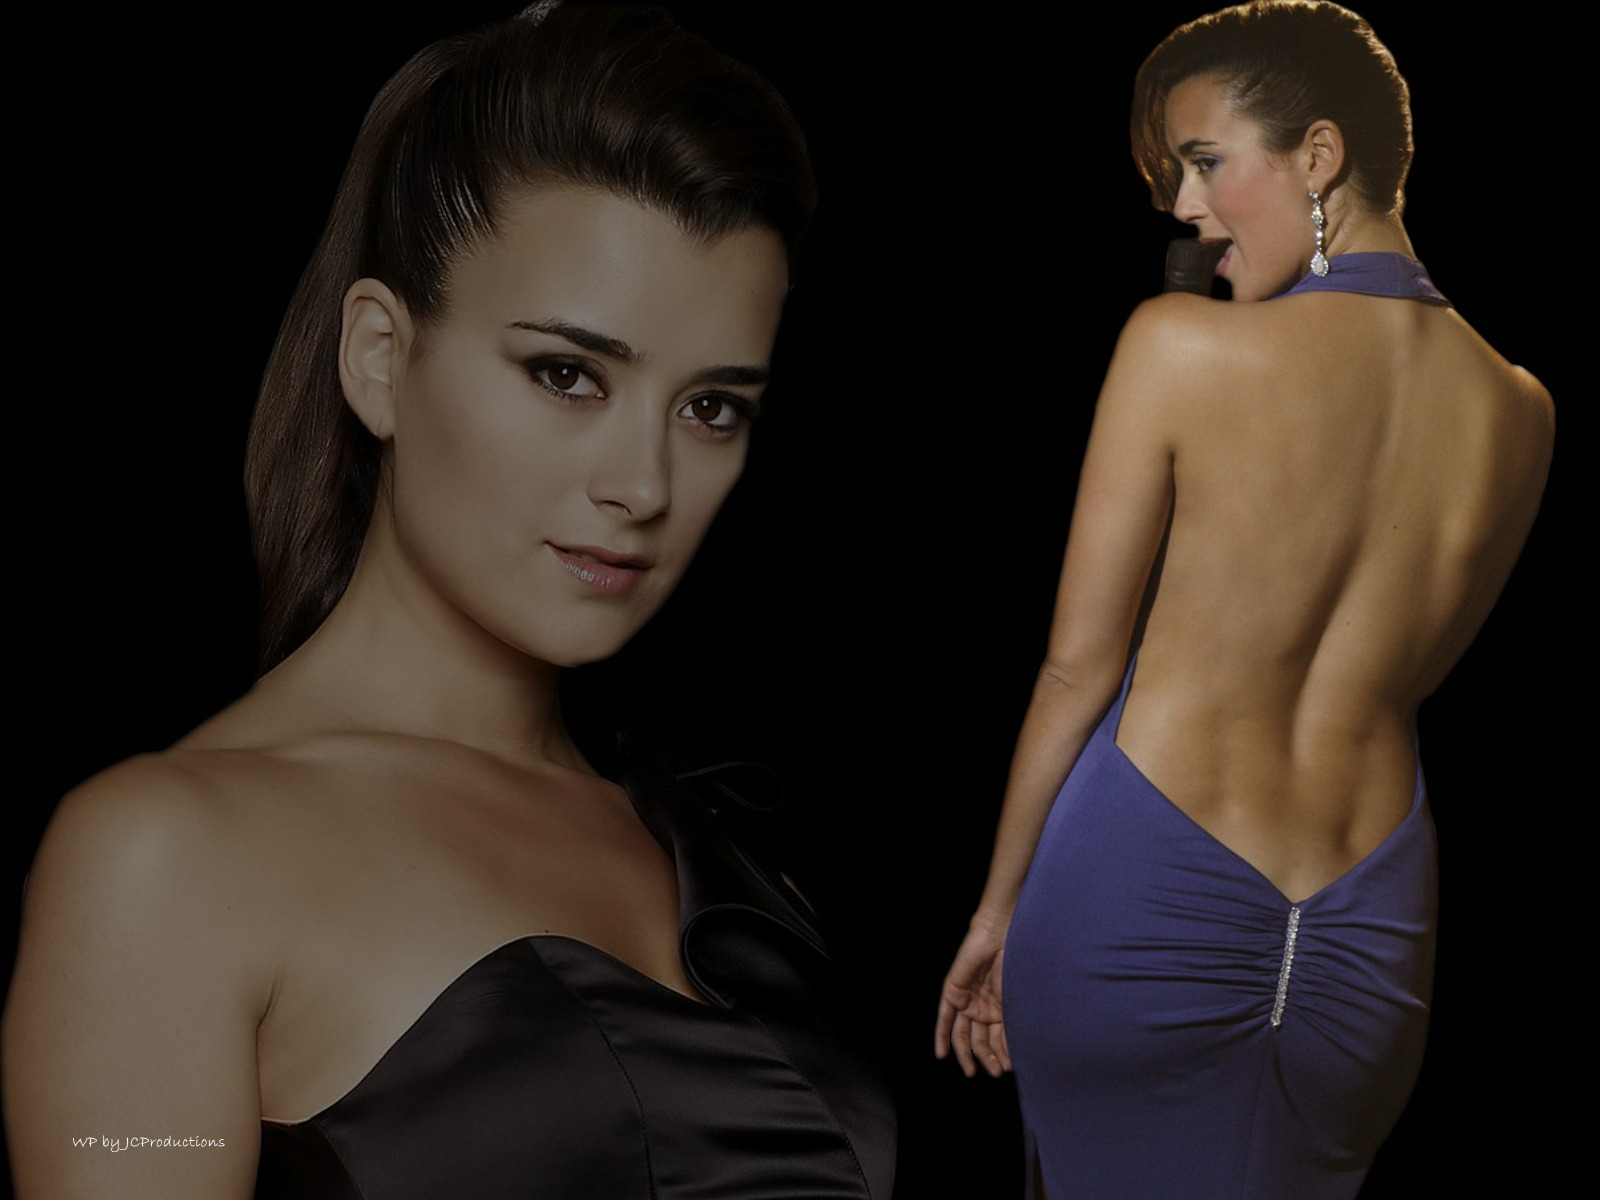 NCIS, Ziva David, Blue Dress, Bare Back Cote de Pablo wallpaper